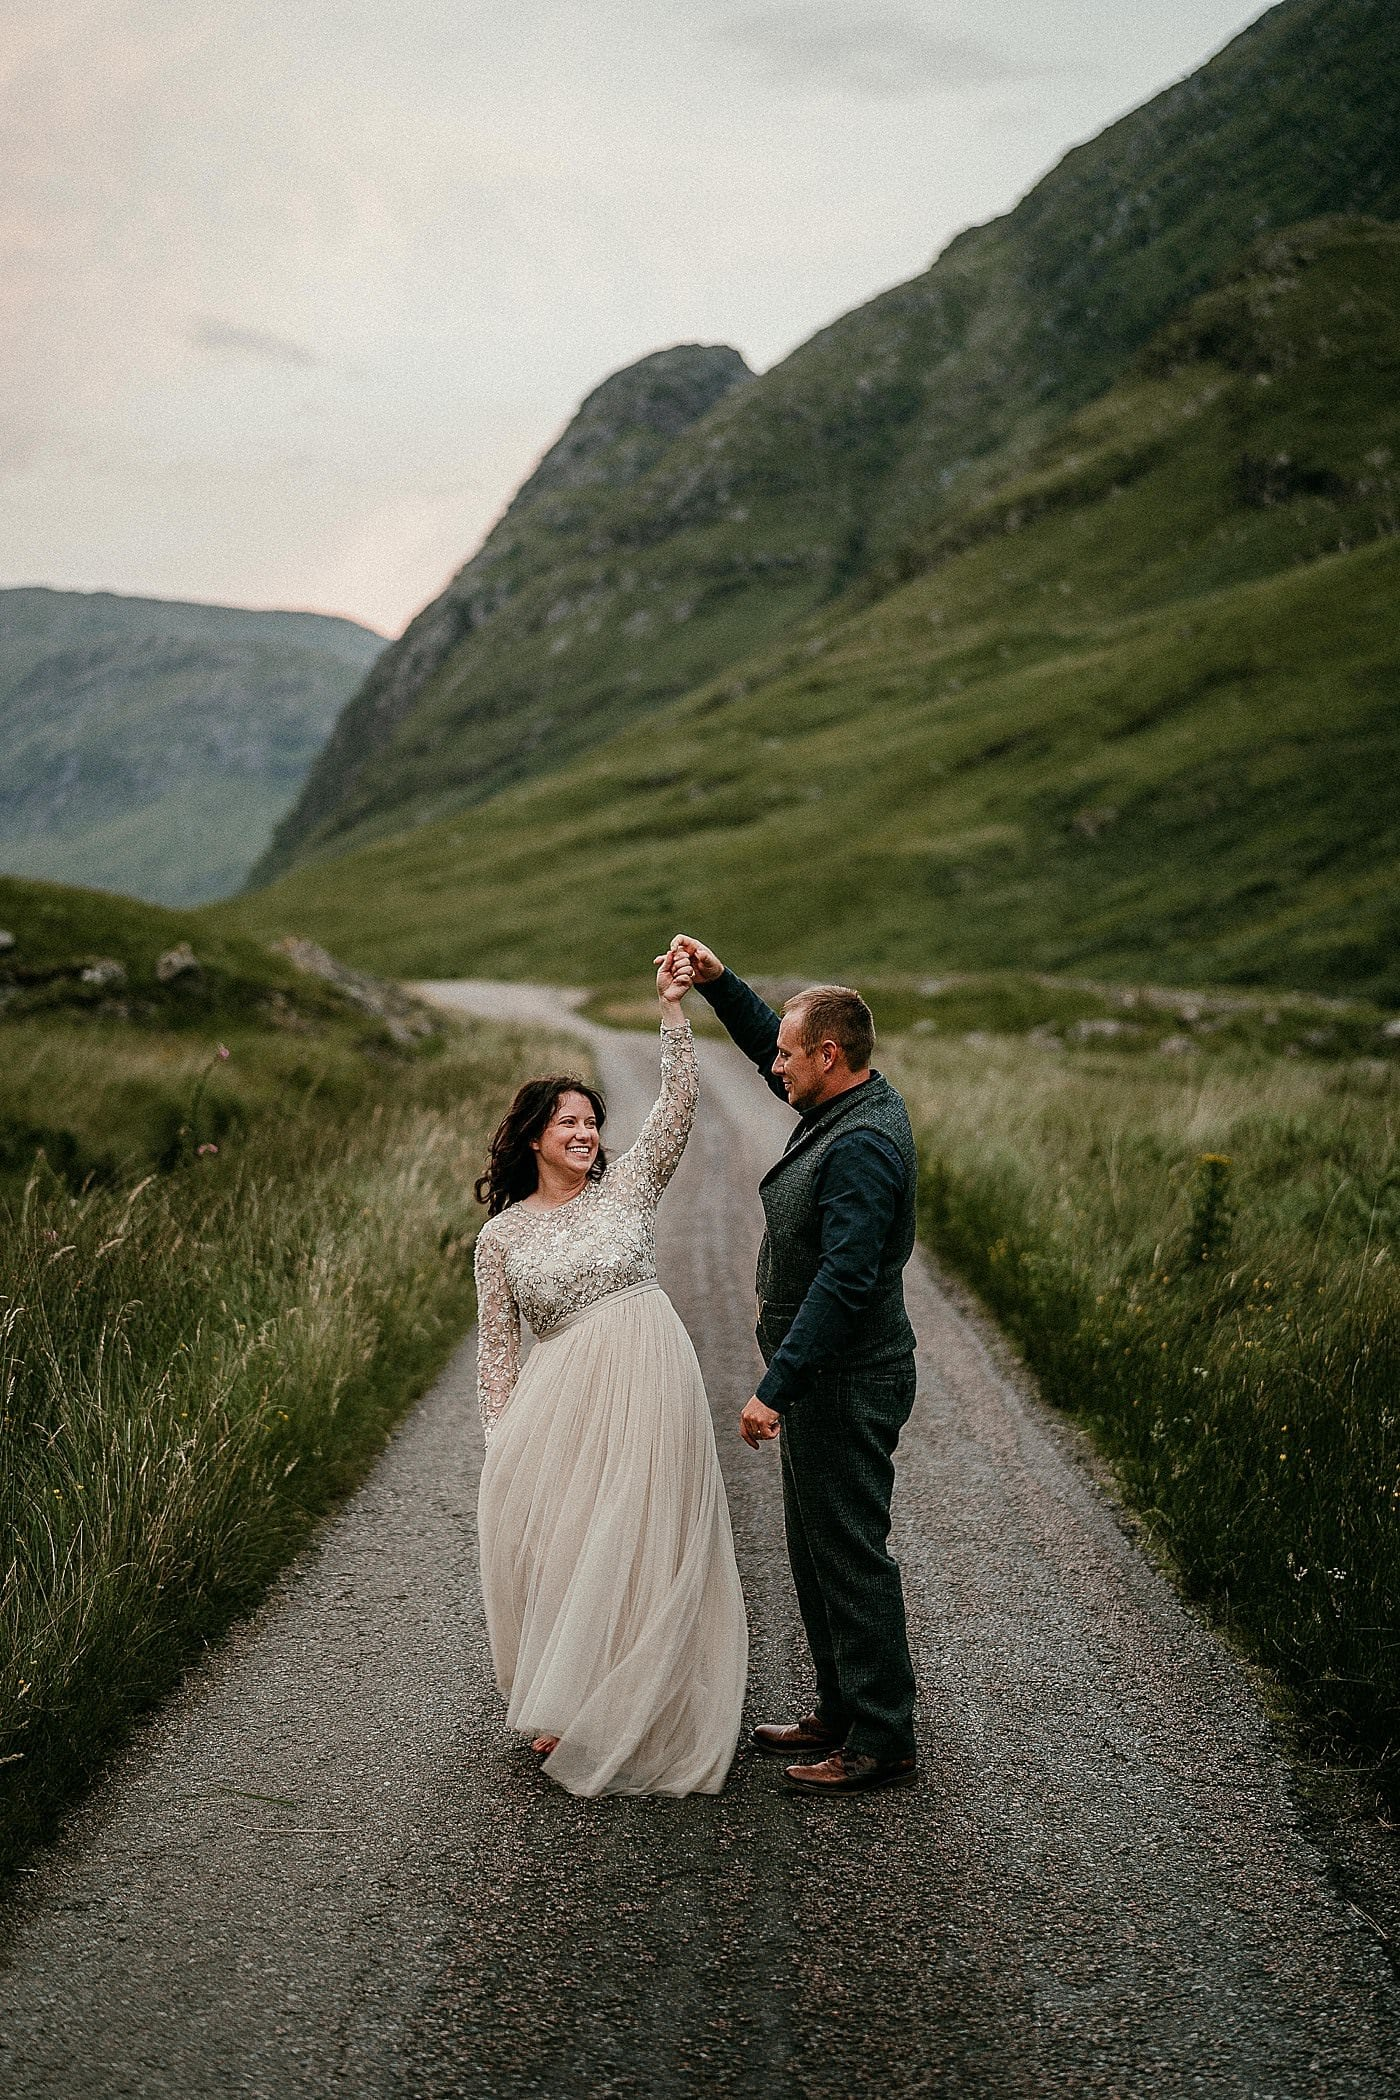 Bride & Groom dancing in The Highlands, it really make for a stunning location for a Scottish elopement. Scotland elopements. Adventure elopement in the Glencoe Mountains. Elopement Glen Coe